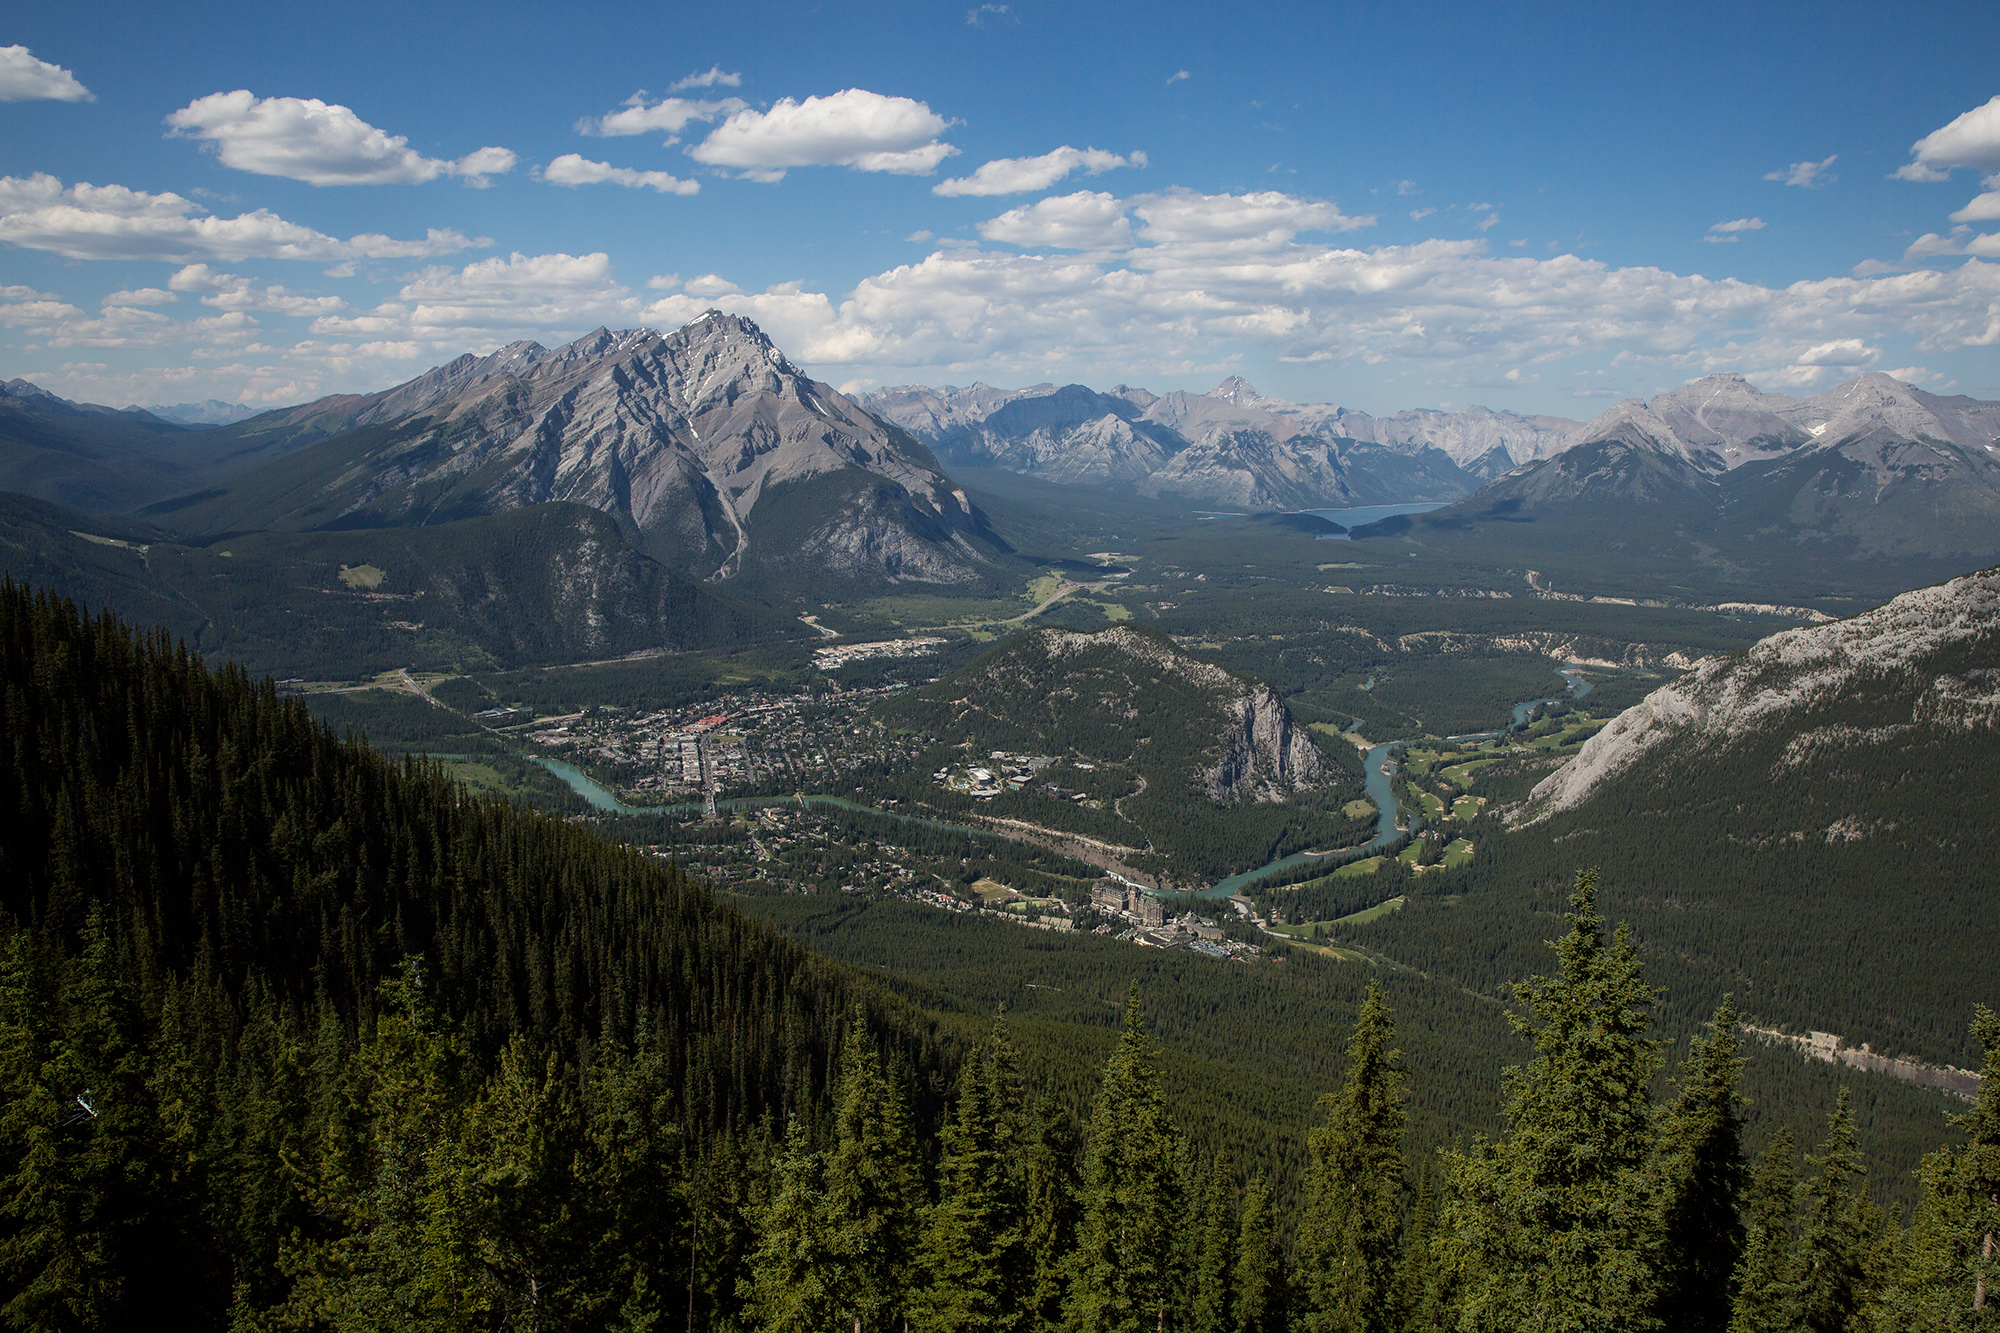 The view of Banff and the surrounding mountains from the top of the Banff Gondola on Sulphur Mountain.